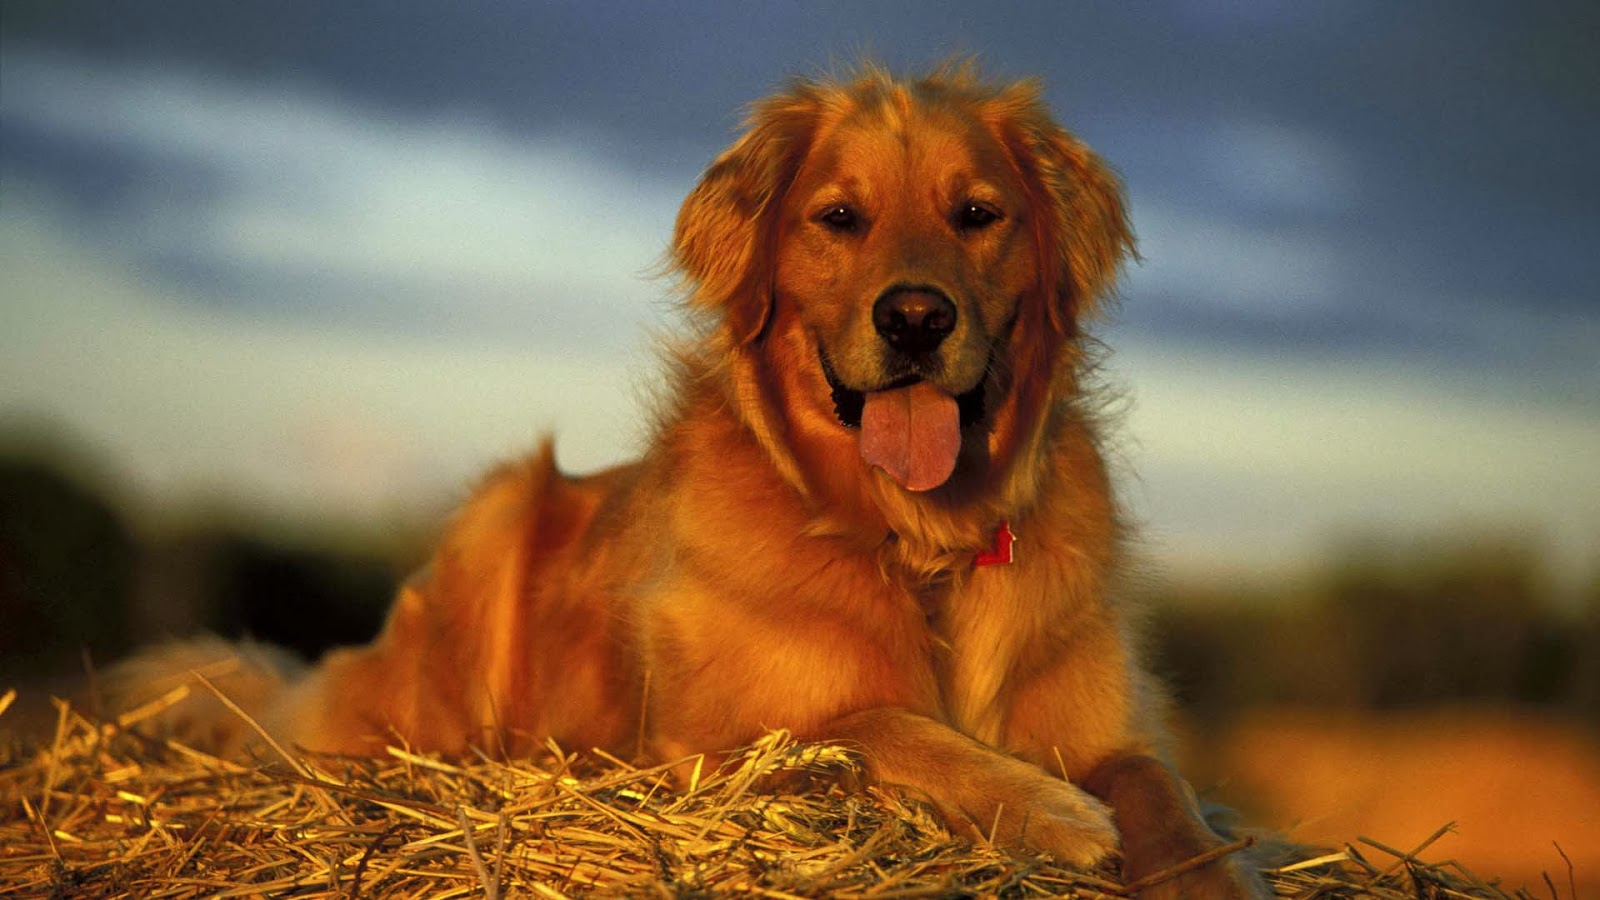 Golden Retriever Backgrounds Wallpapersafari